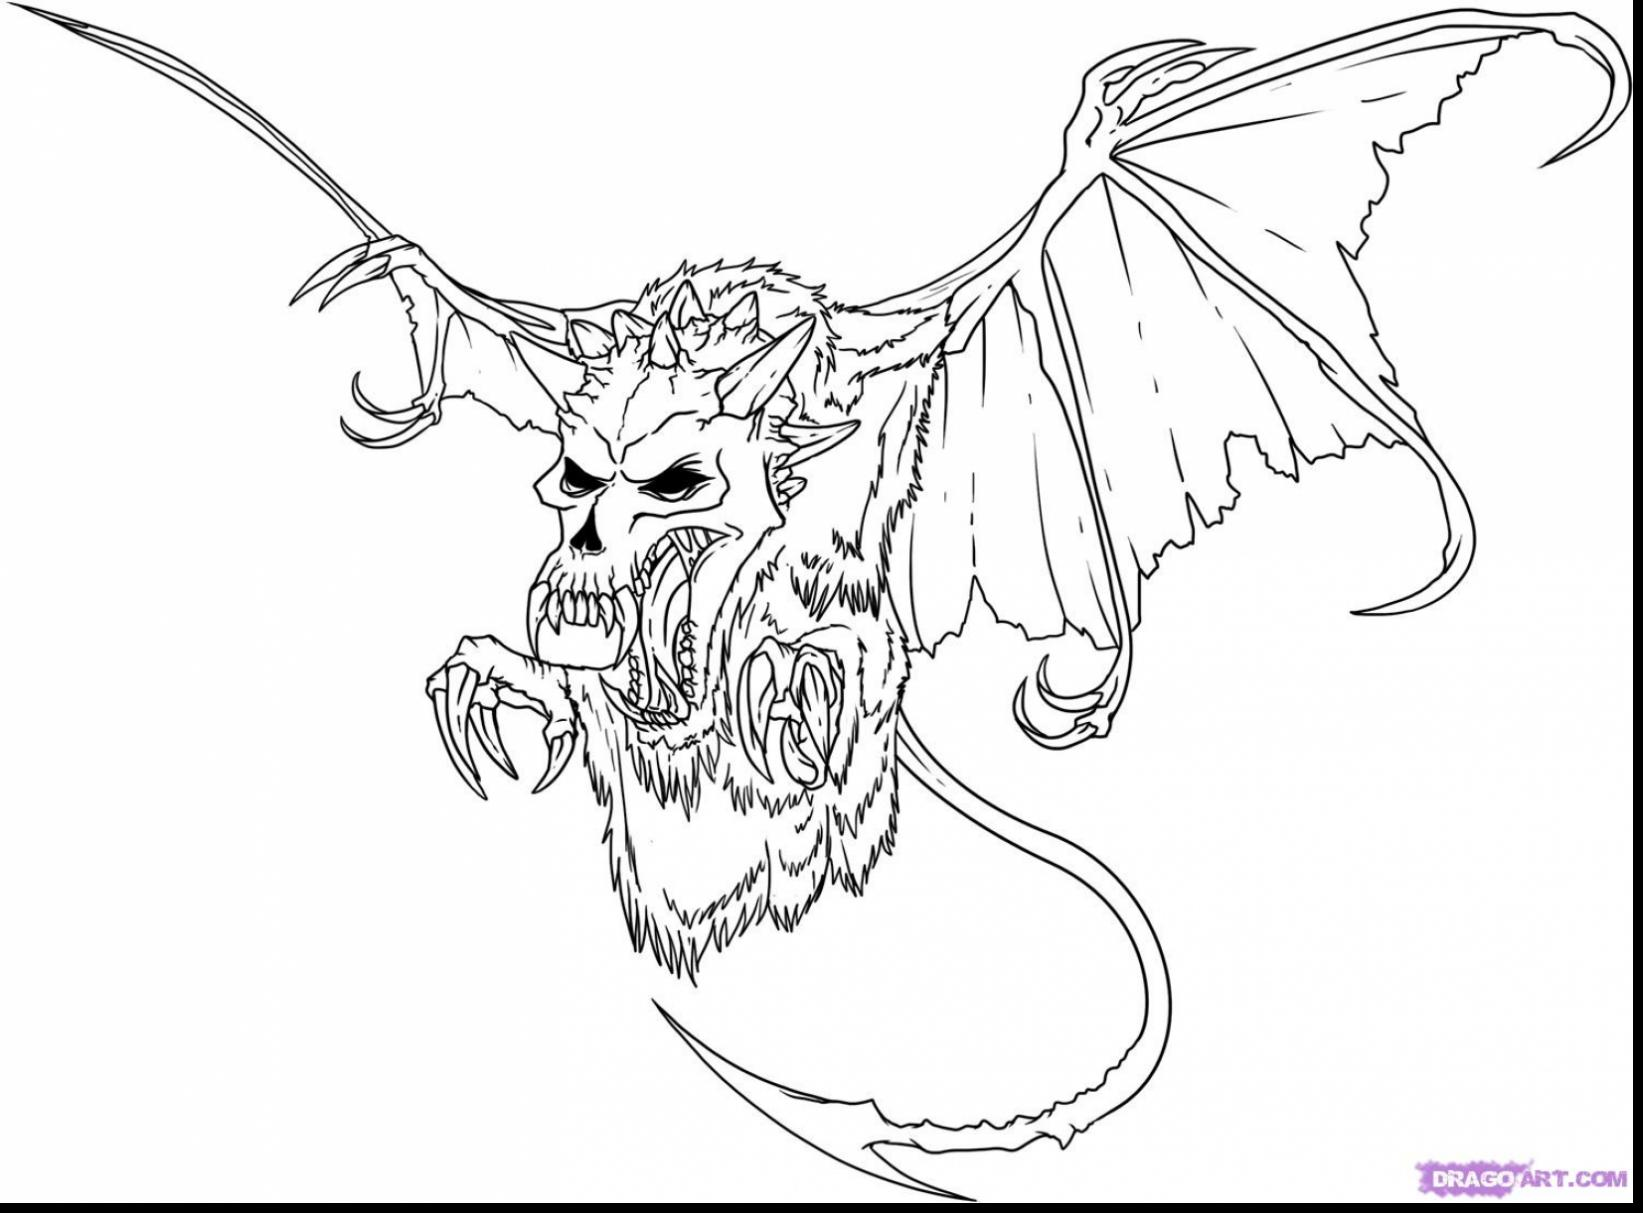 Evil Monster Drawing at GetDrawings.com | Free for personal use Evil ...